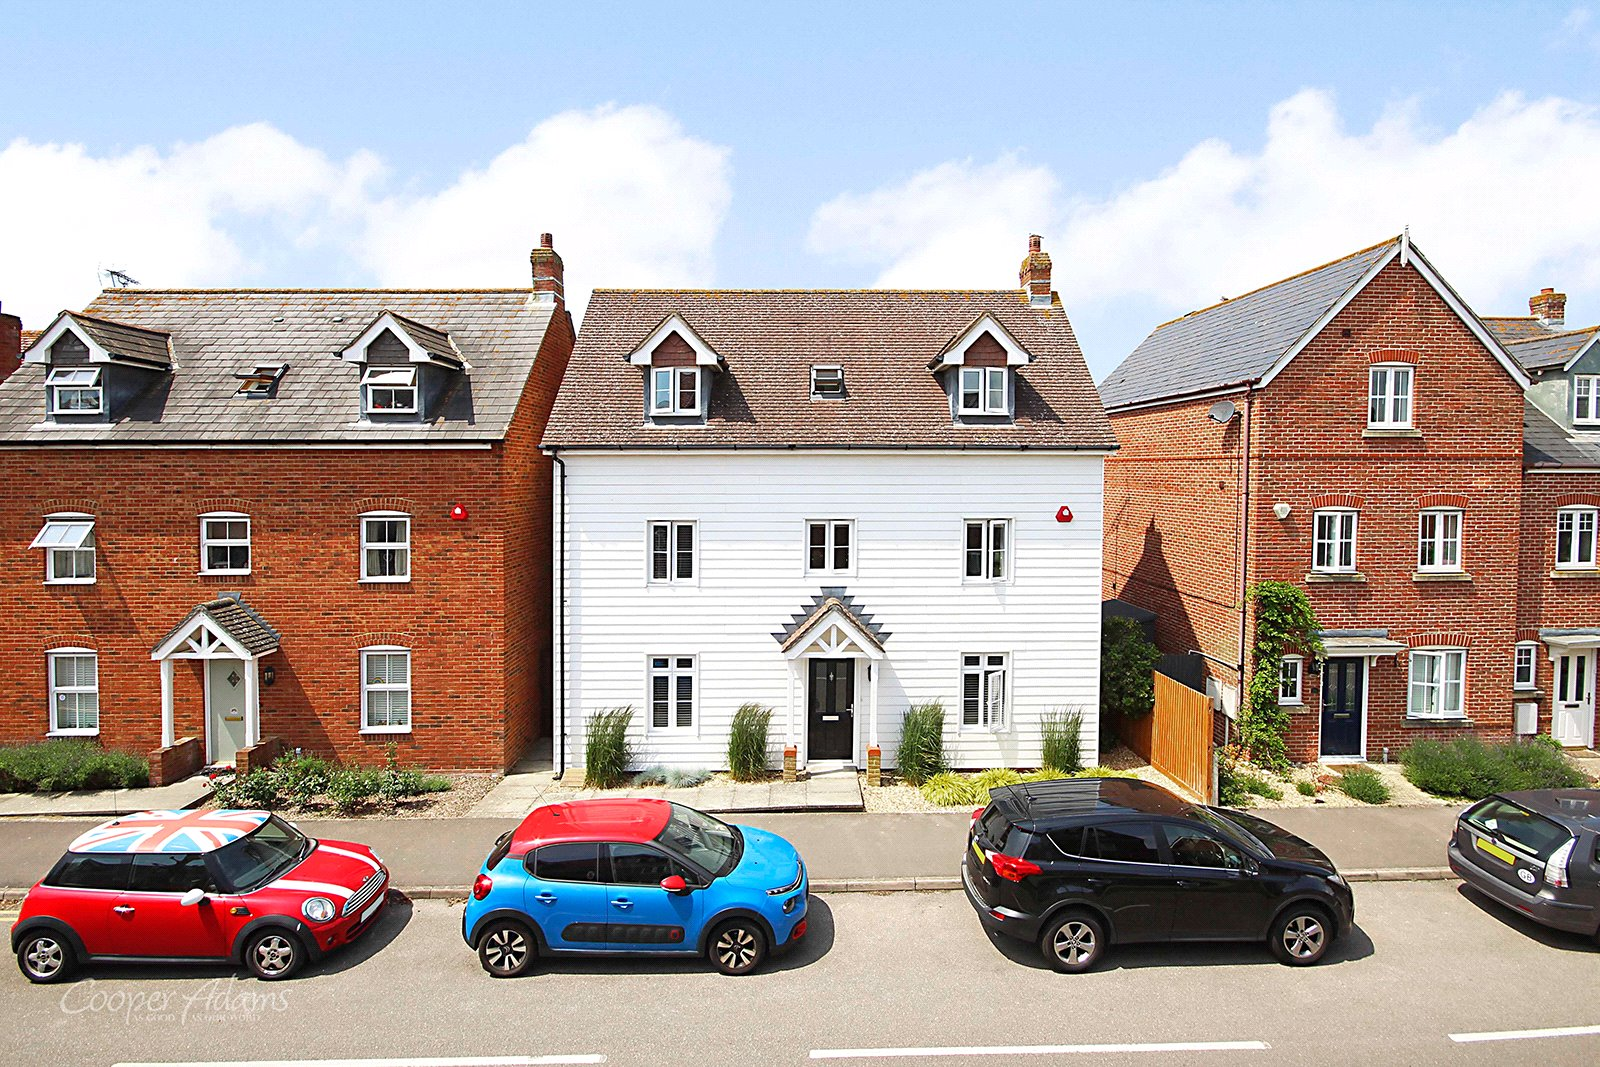 5 bed house for sale in Rowan Way, Angmering, BN16